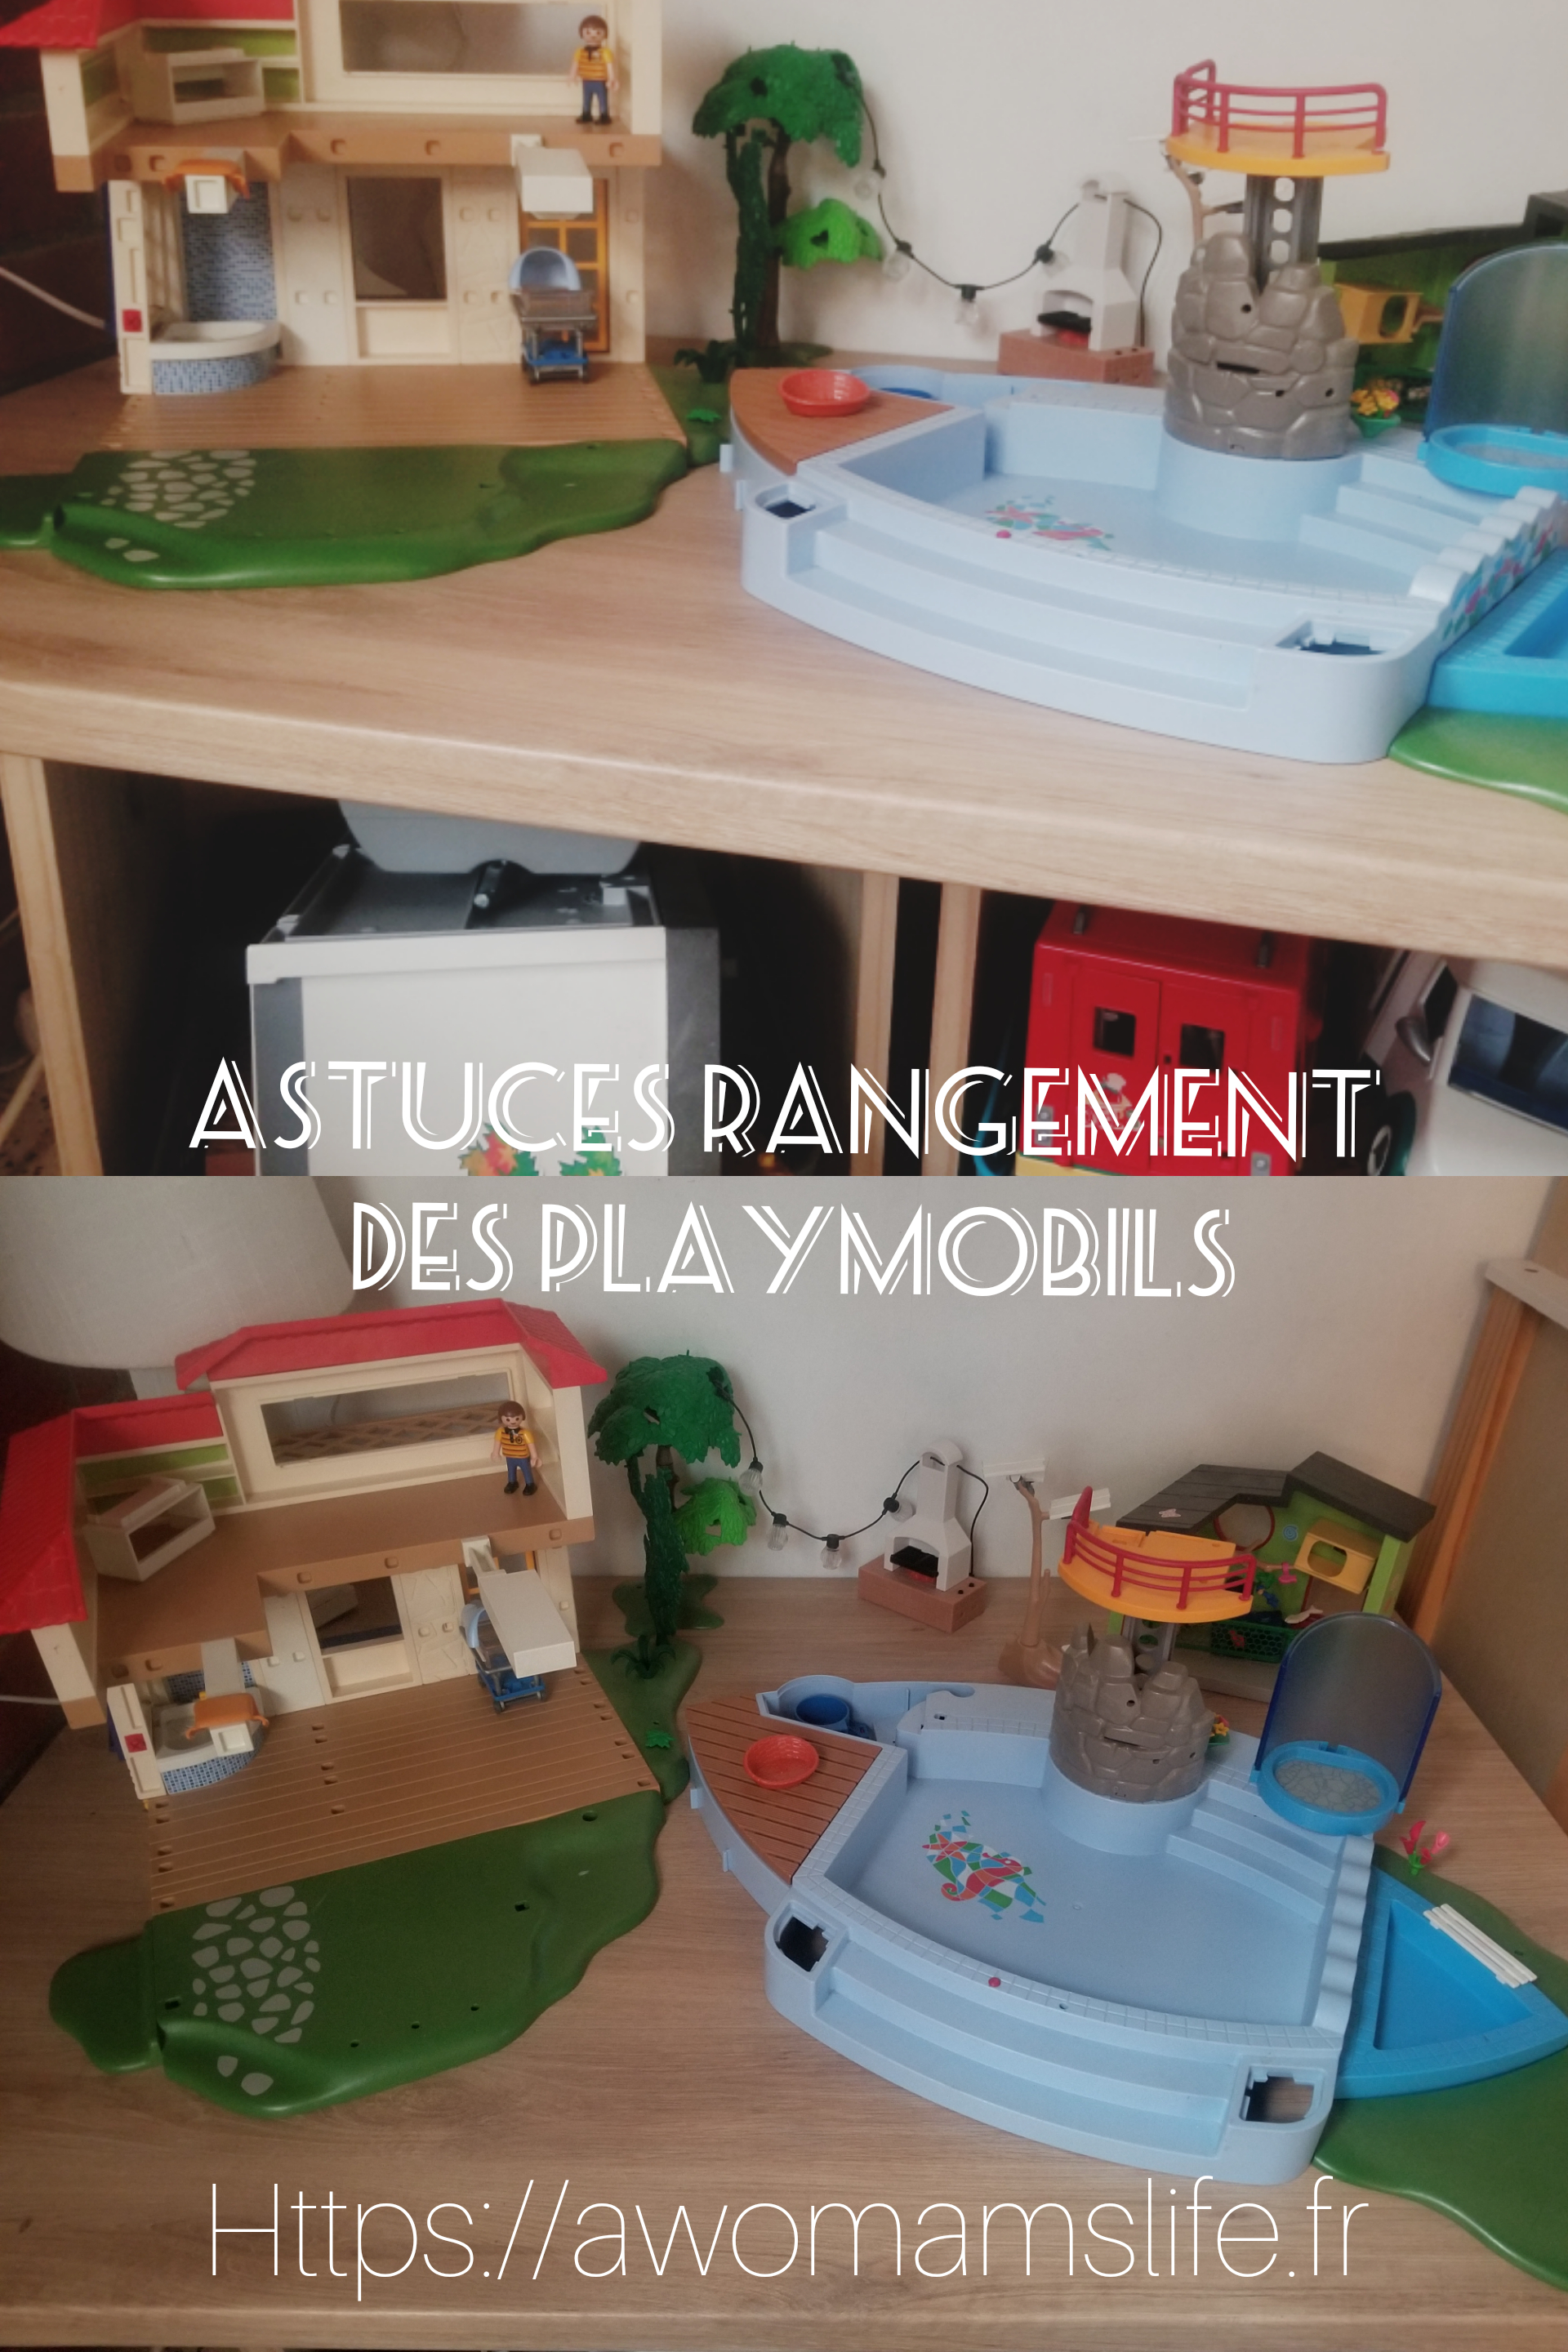 Astuces Rangements Playmobils A Womam S Life